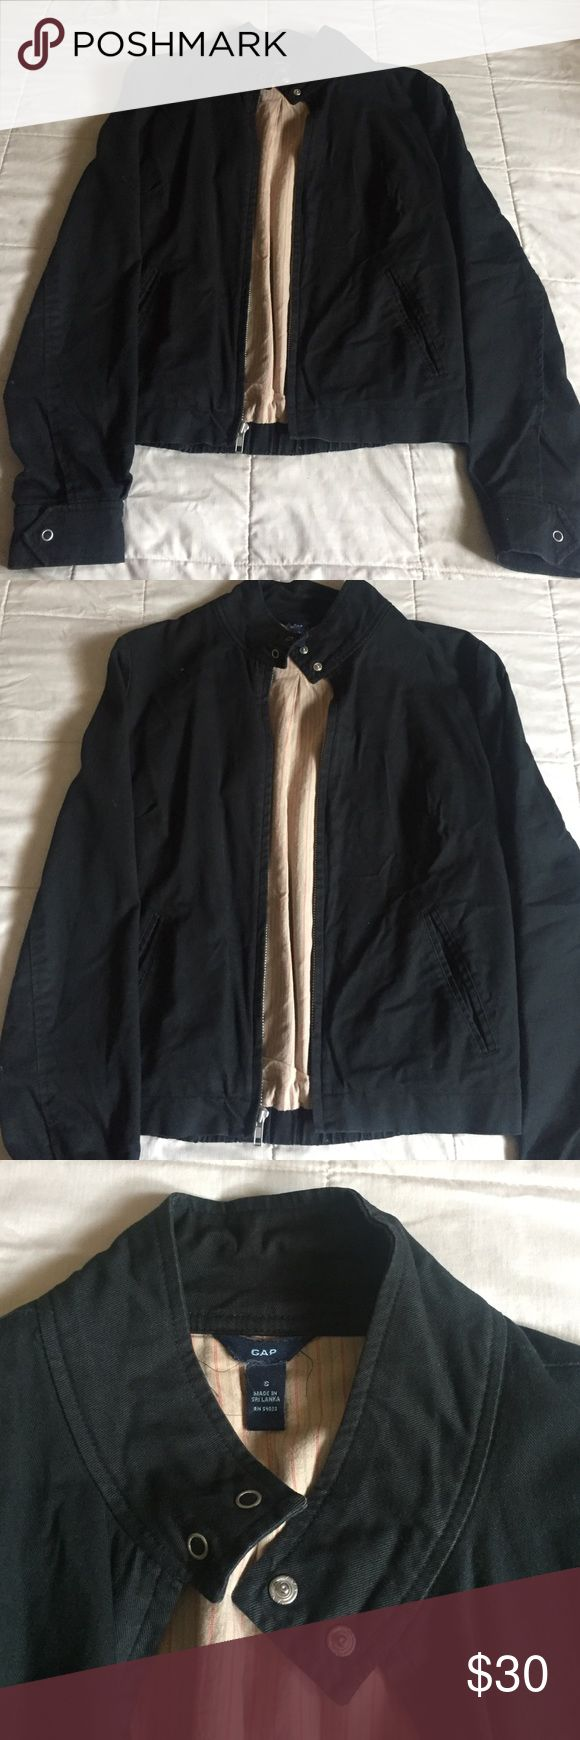 Gap jacket In good condition. Not sure if it's a men's jacket but I wear it and it doesn't look like it. No rips or stains, feel free to make an offer 😁 GAP Jackets & Coats Bomber & Varsity